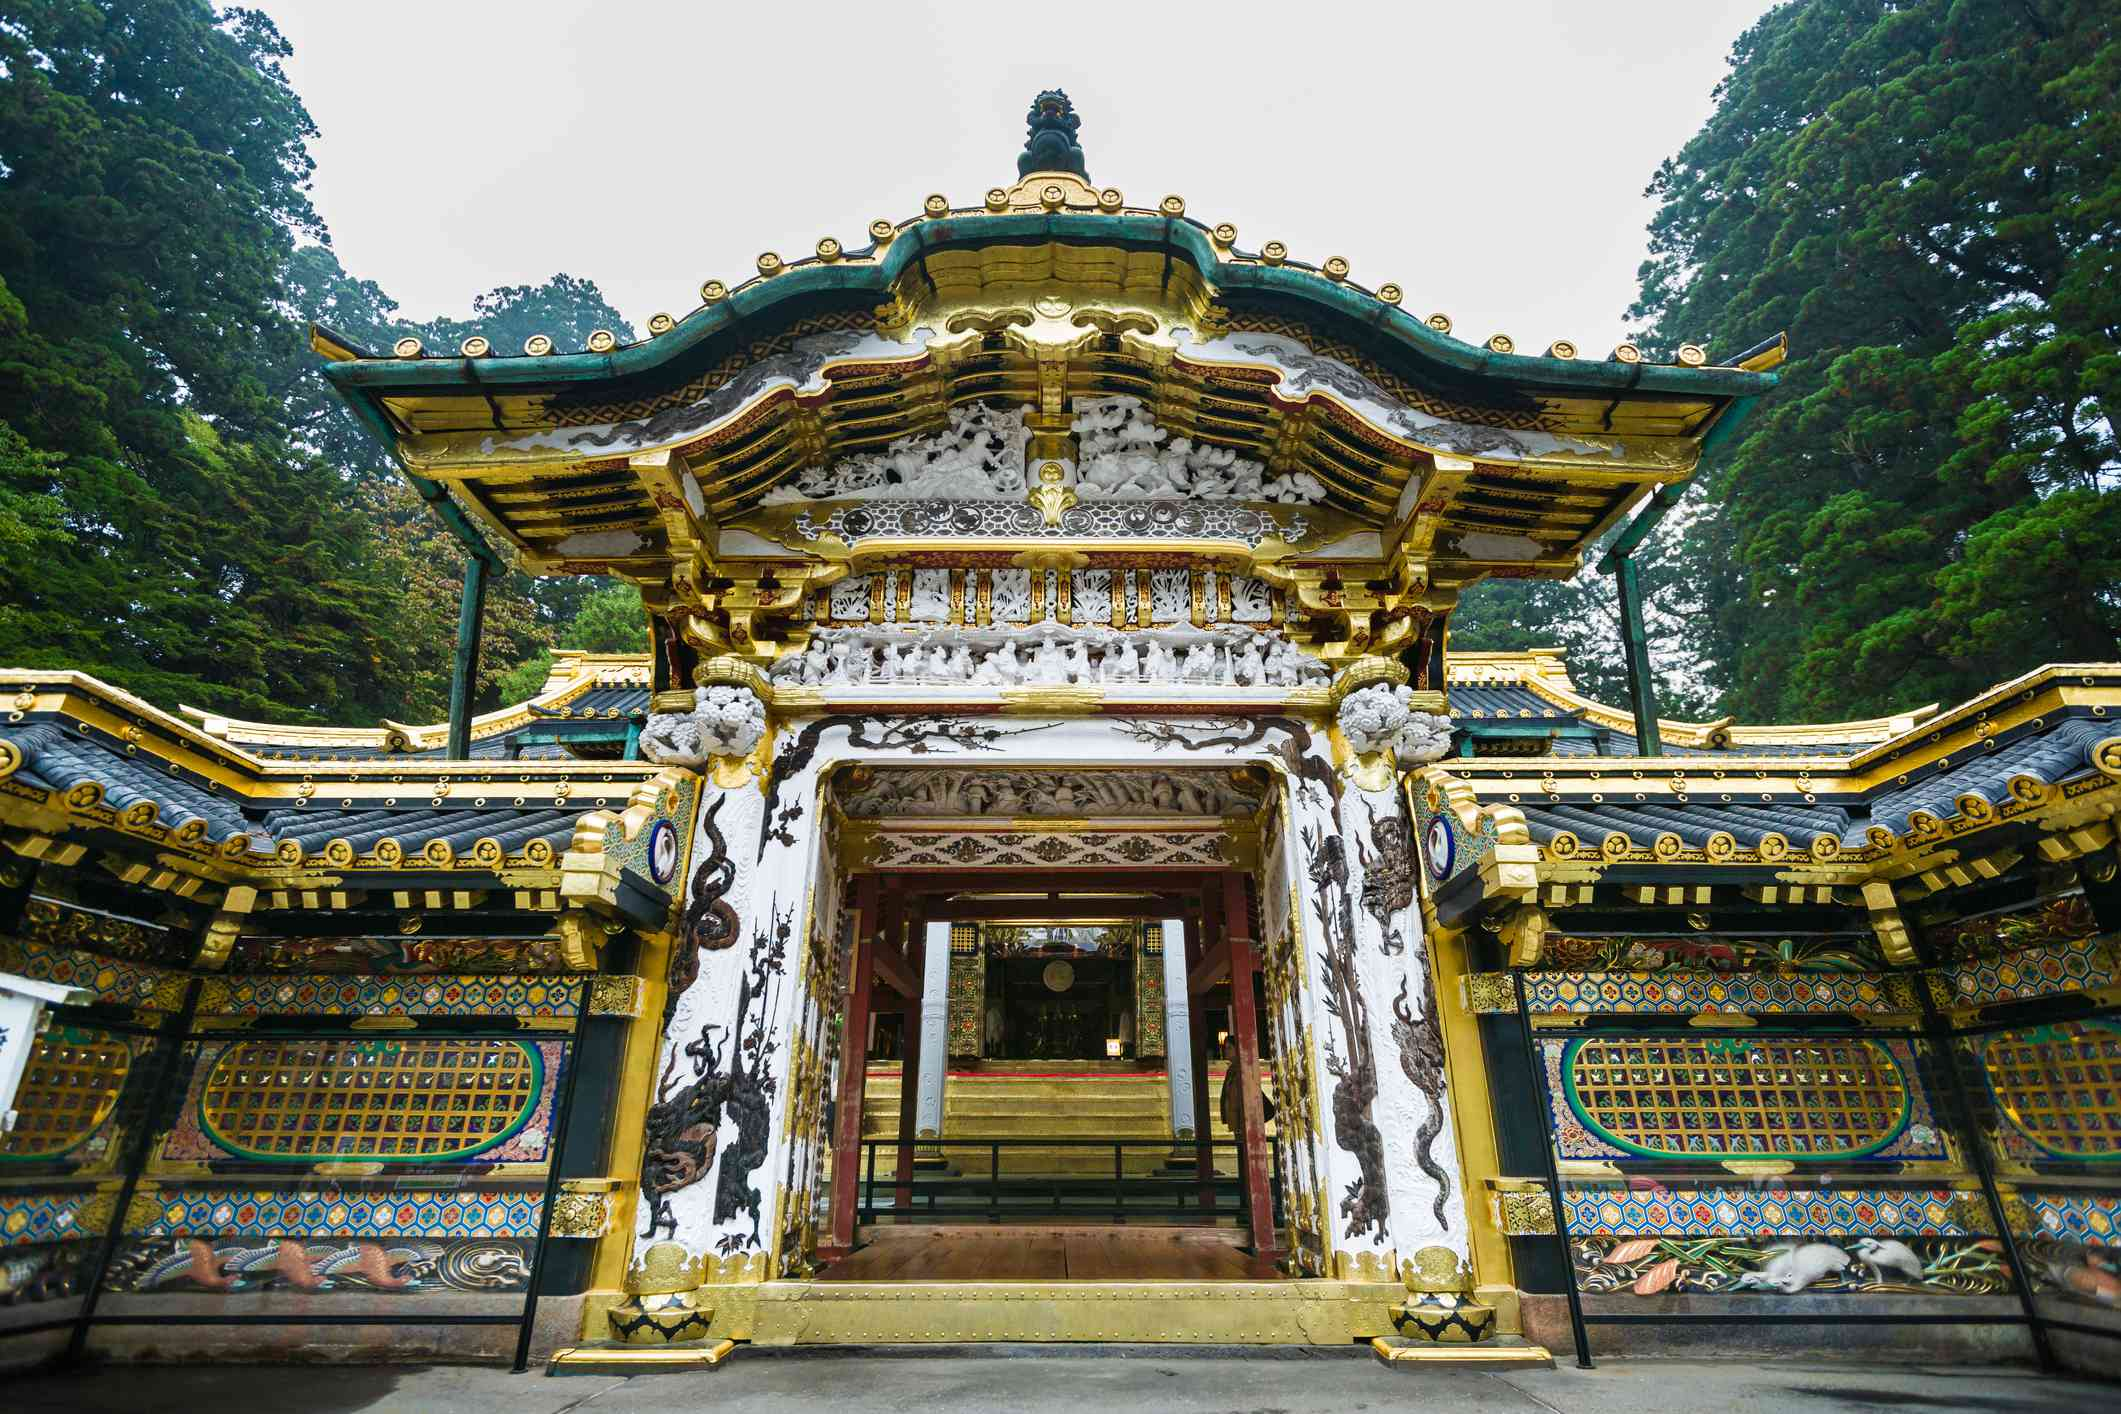 The Karamon at Tosho-gu Shrine Mausoleum surrounded by cedar forest in rainy morning.